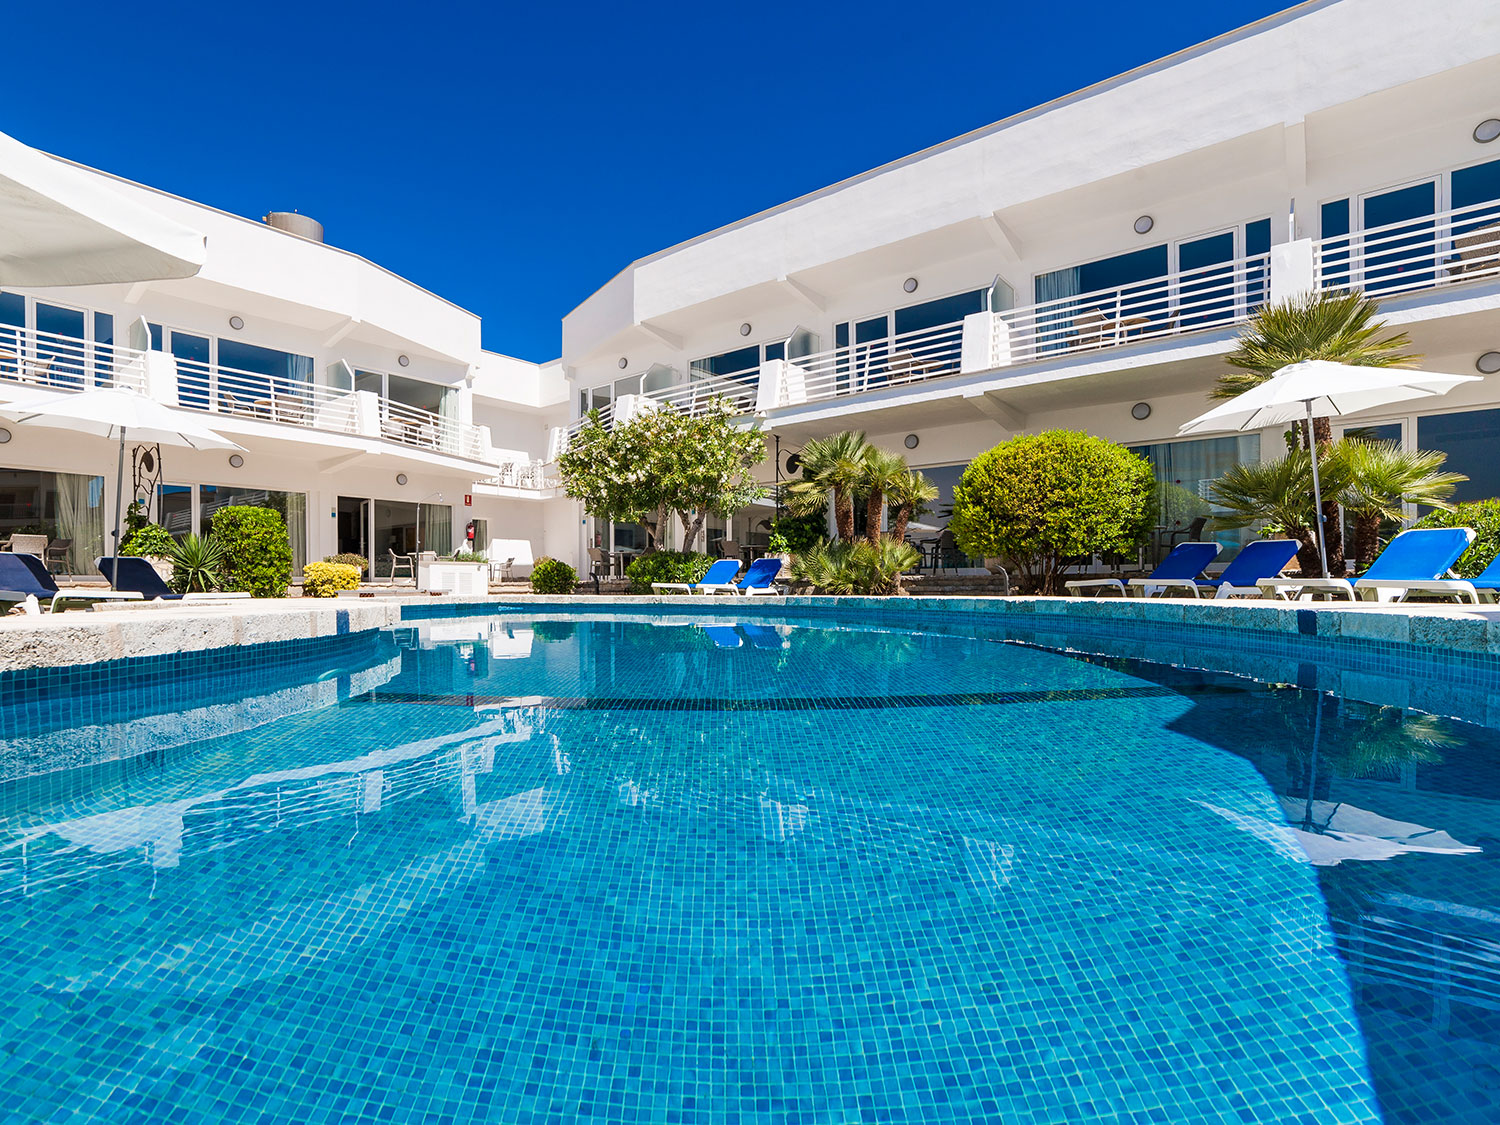 Swimming Pool and Apartments Exterior Hoposa Apartments Montelin